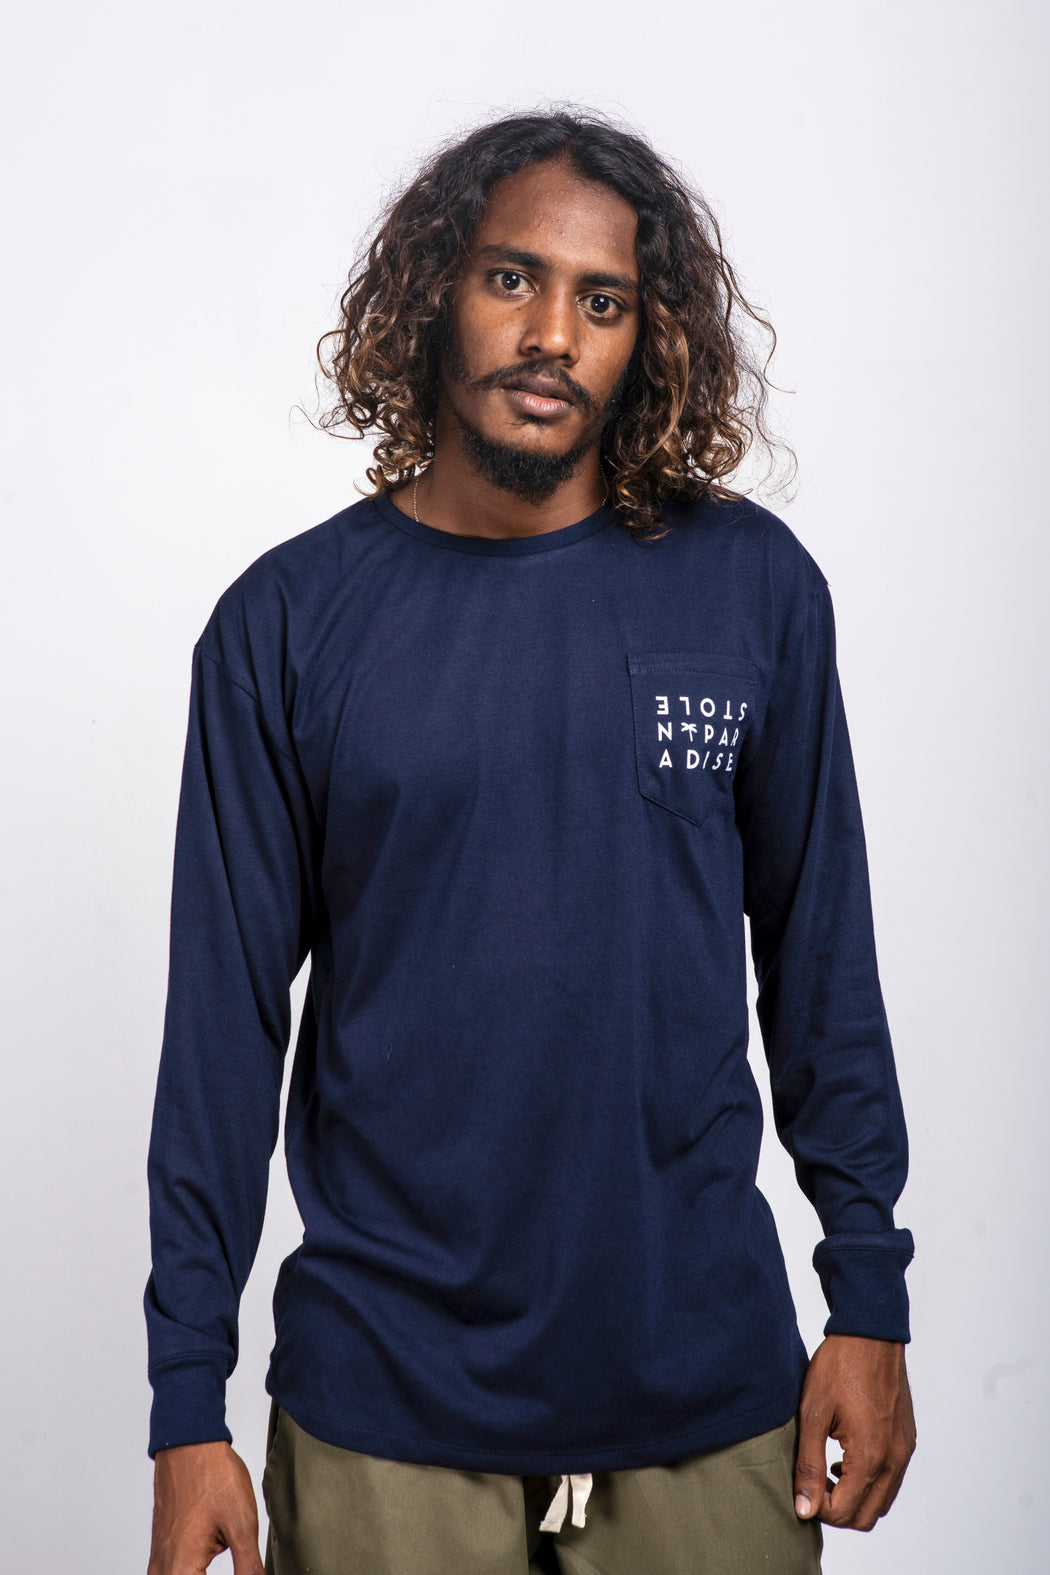 Ceylon Square L/S - Navy Blue